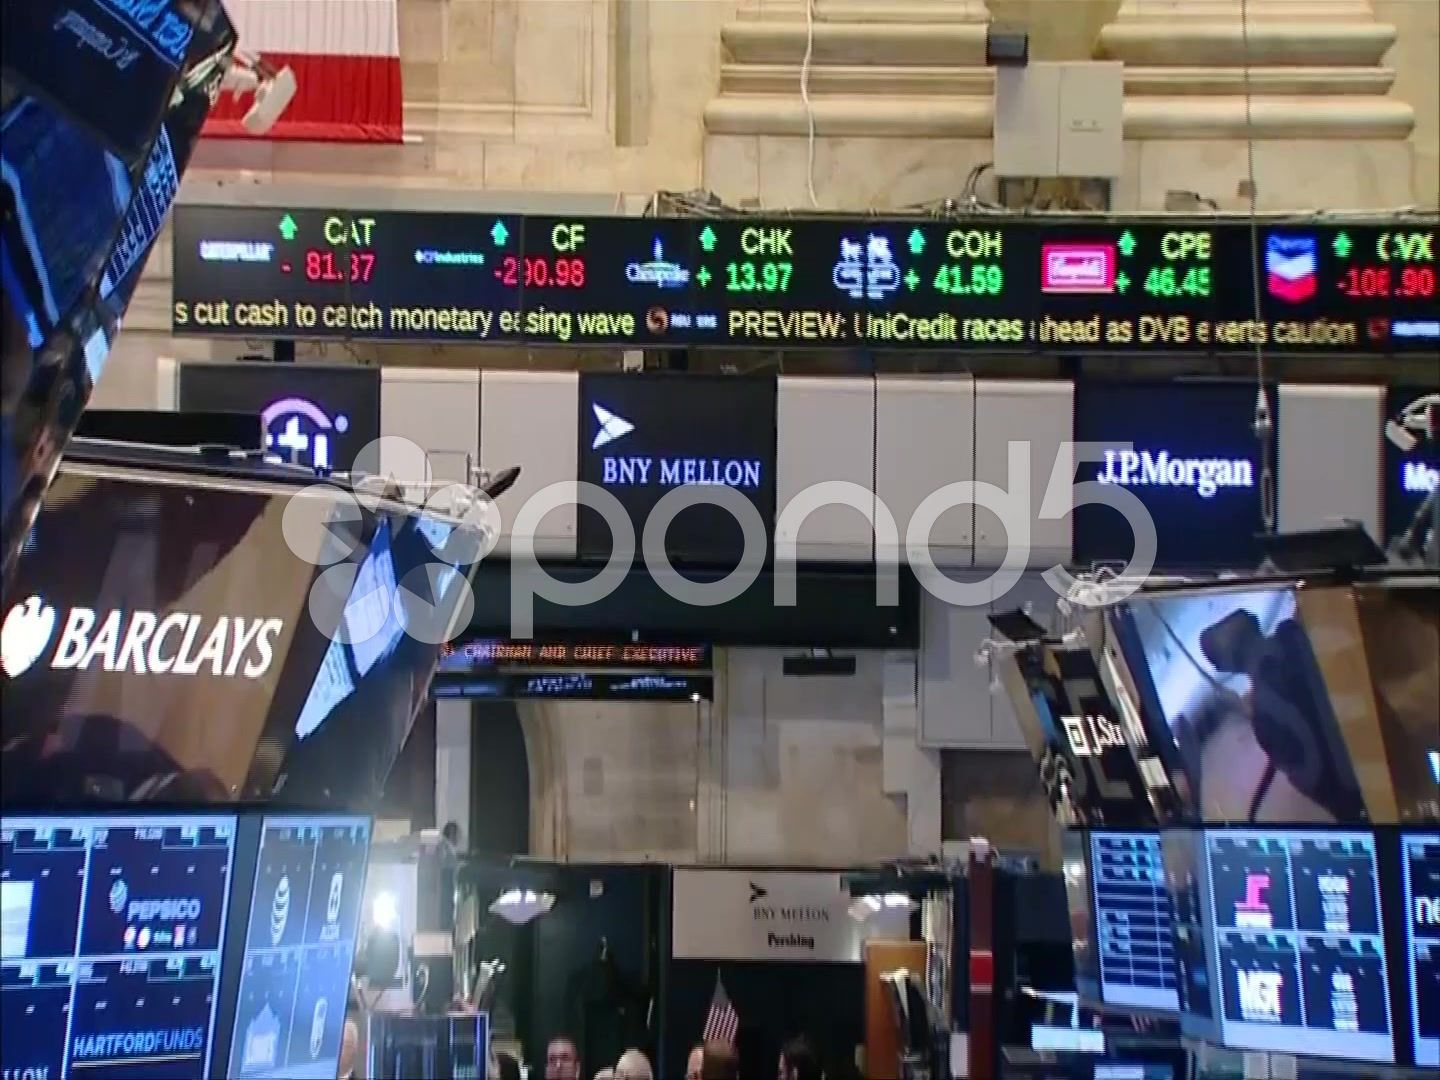 Inside New York Stock Exchange Nyse Stocks And Shares Ticker Stock Footage Exchange Nyse York Stock Stock Exchange Stock Footage Stocks And Shares